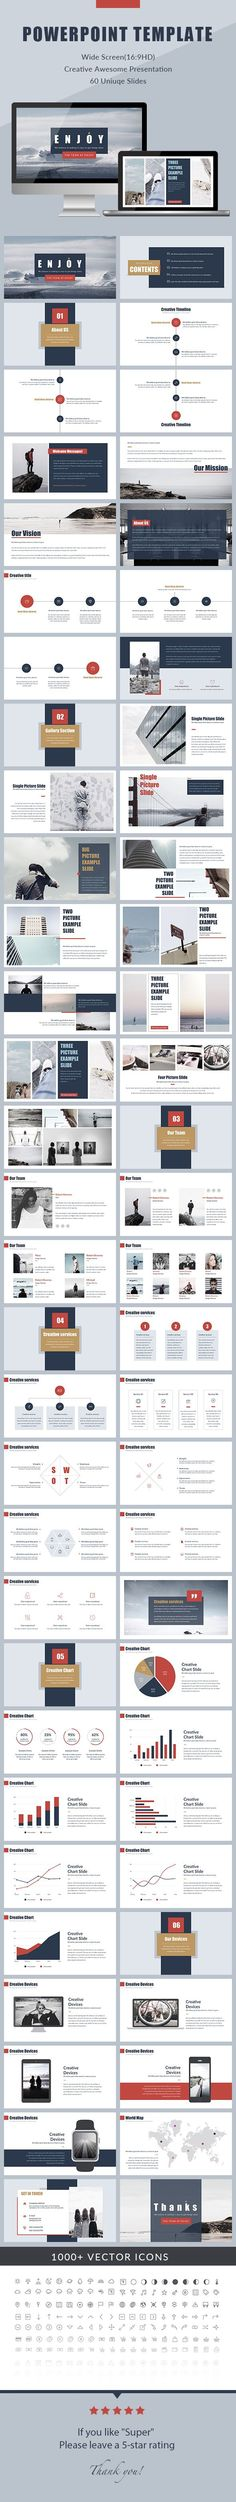 Enjoy - Minimal PowerPoint Presentation Template